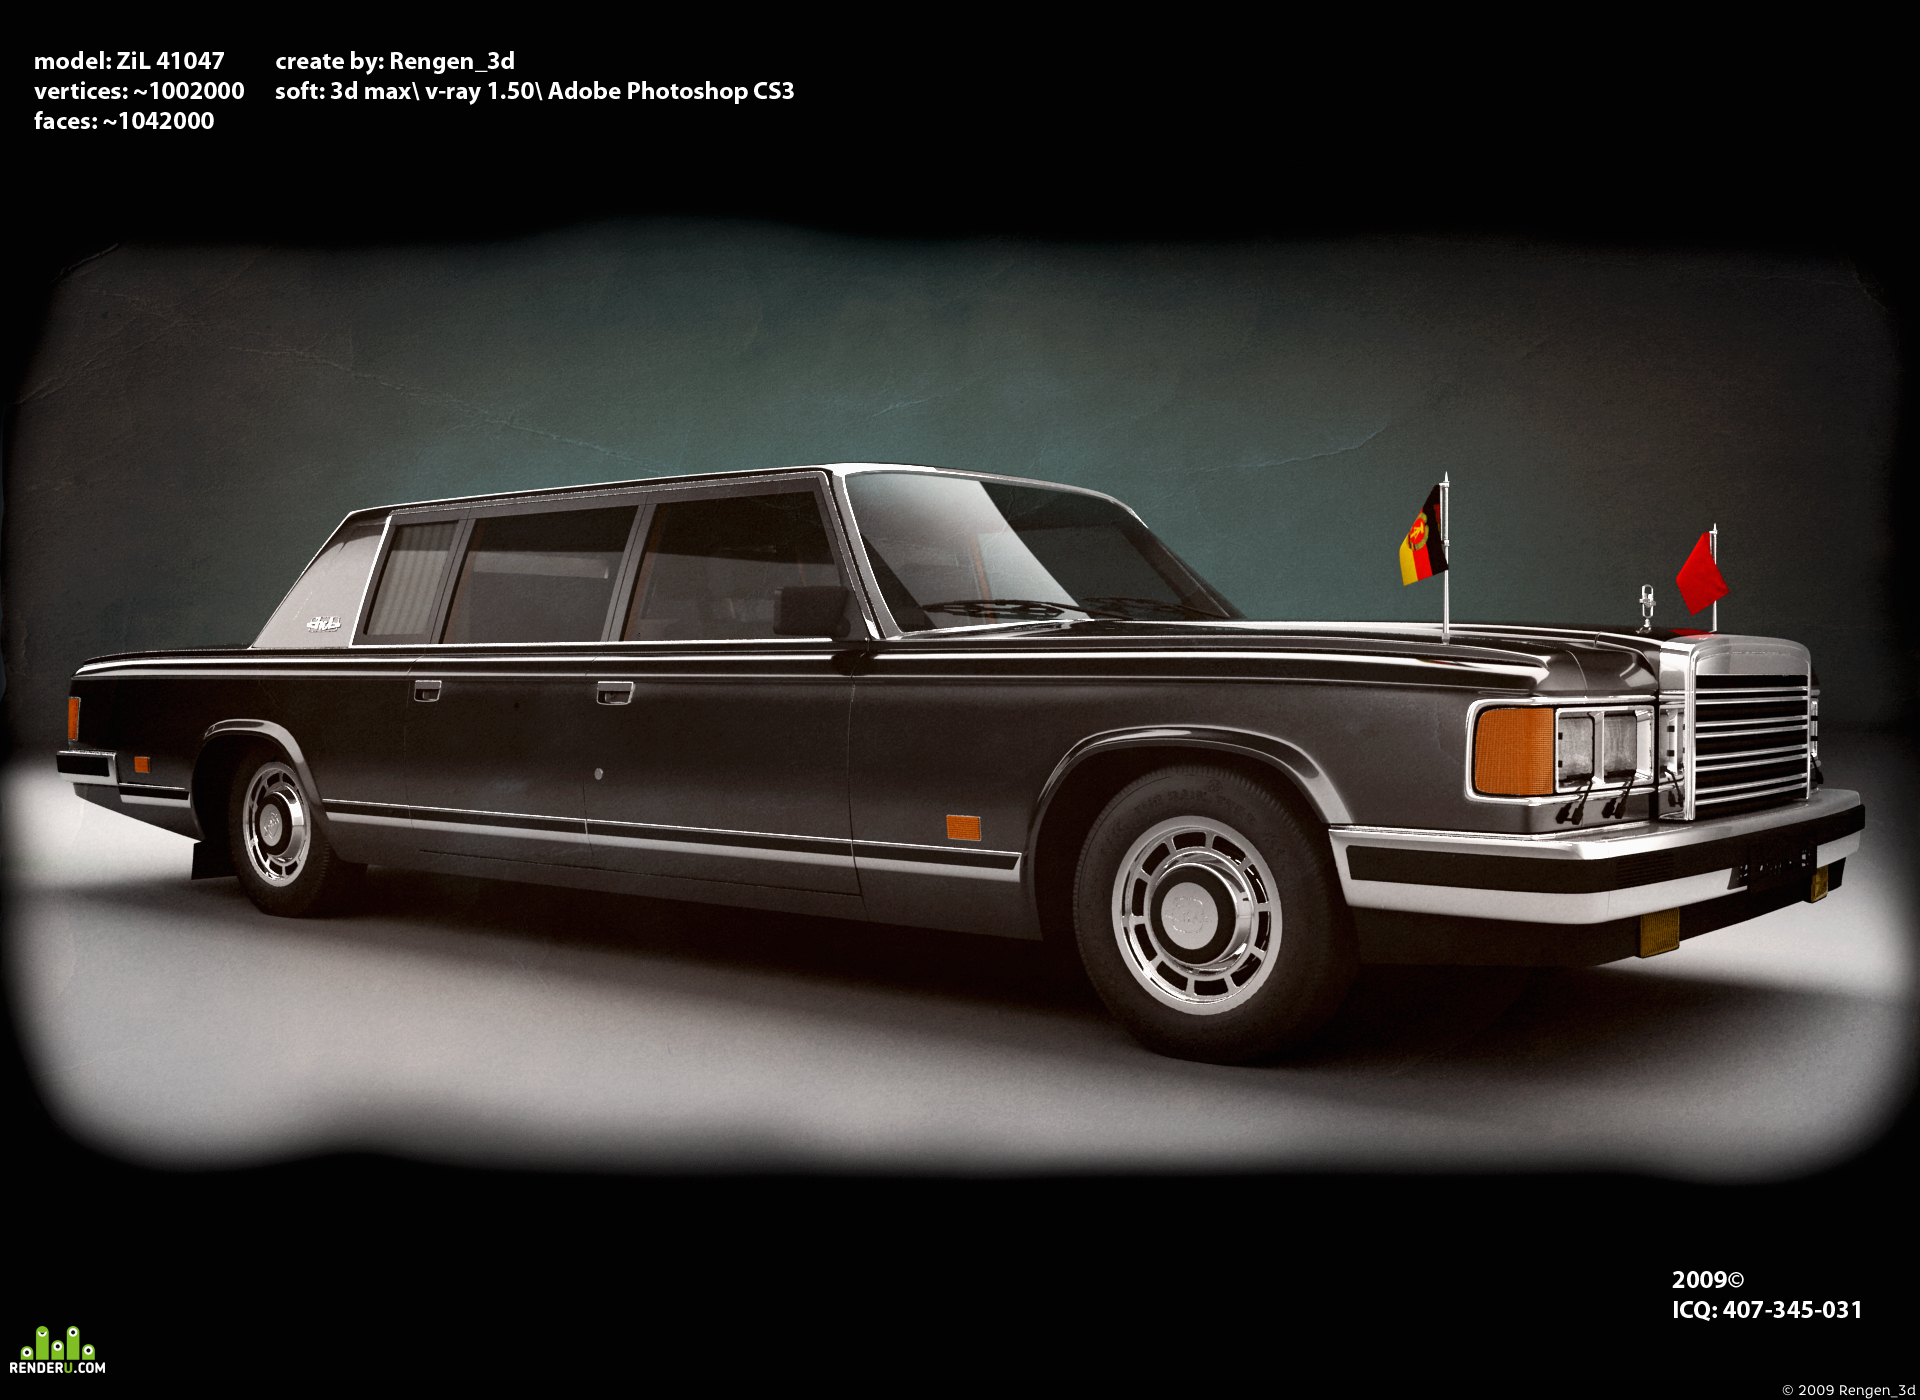 preview ZiL 41047